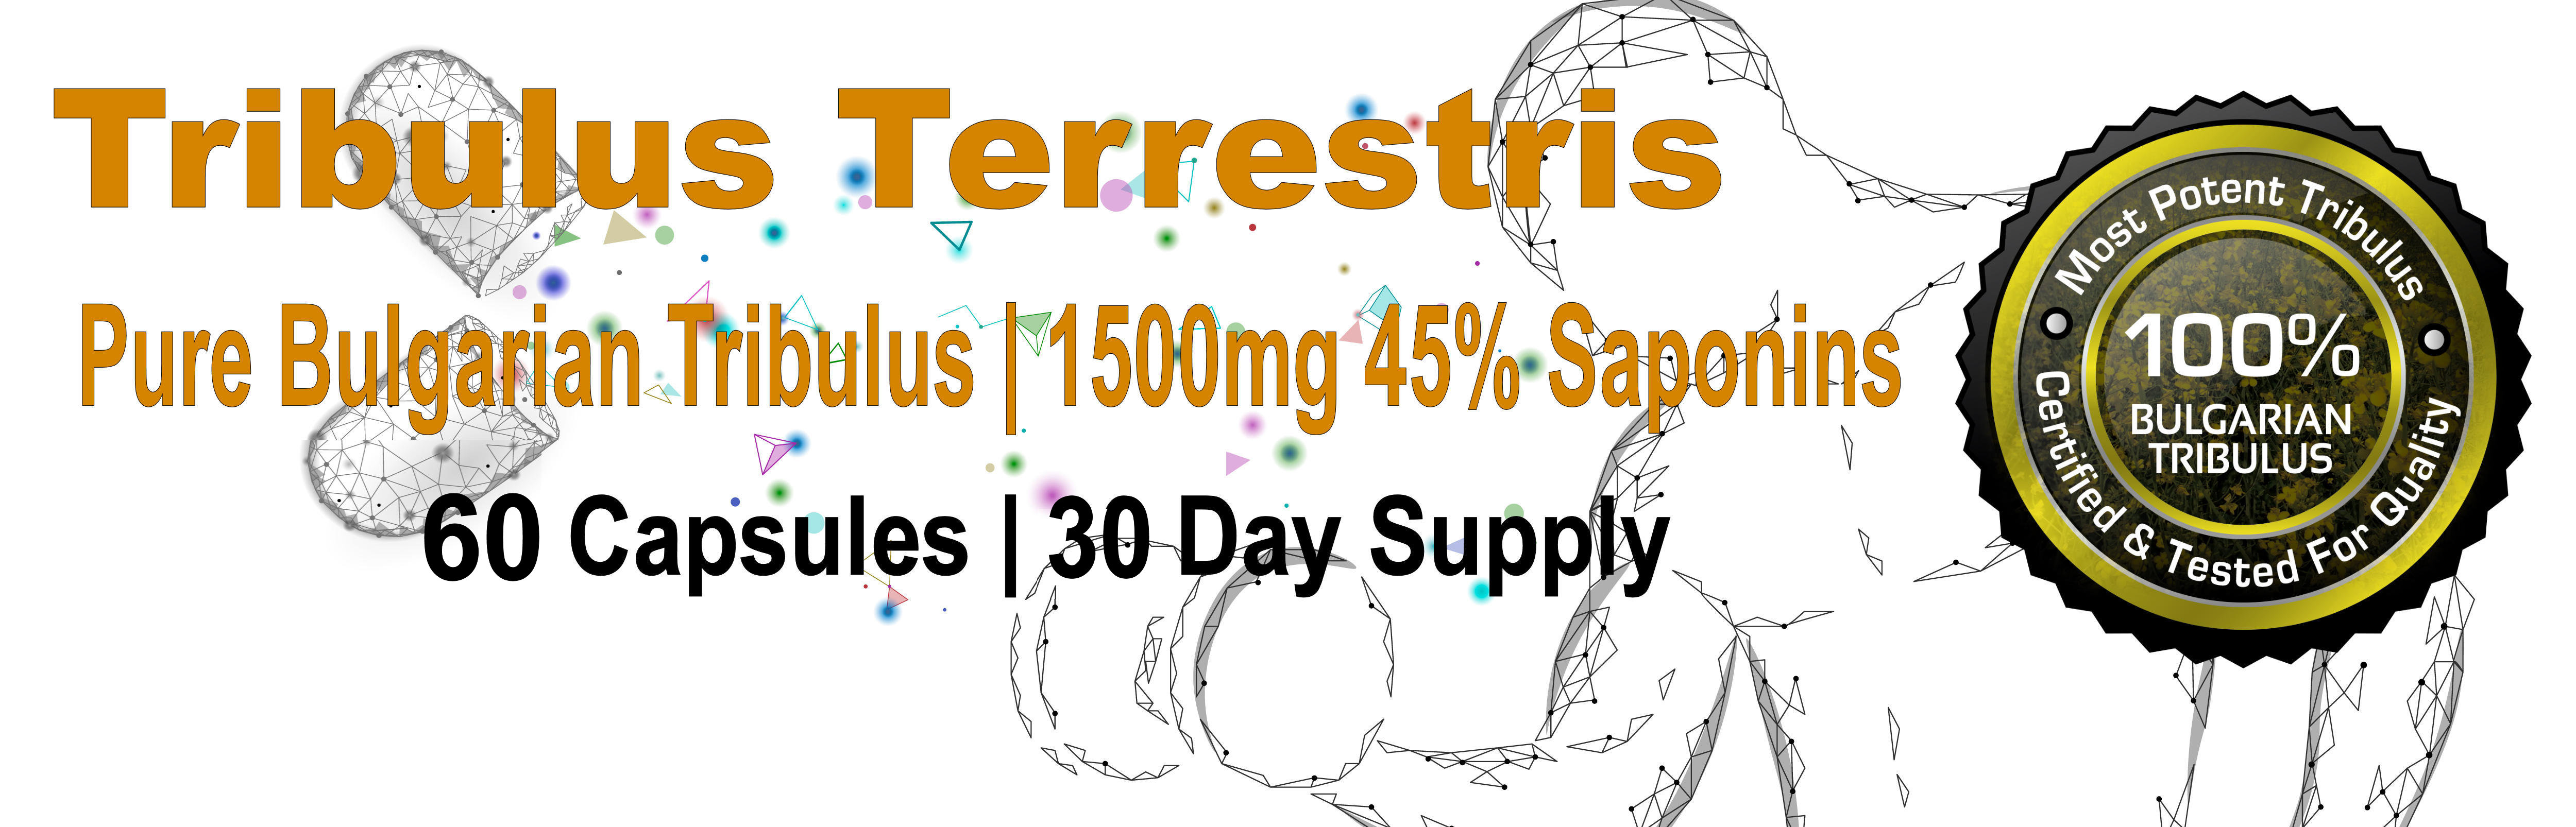 Tribulus Terrestris One 60 Count Bottle